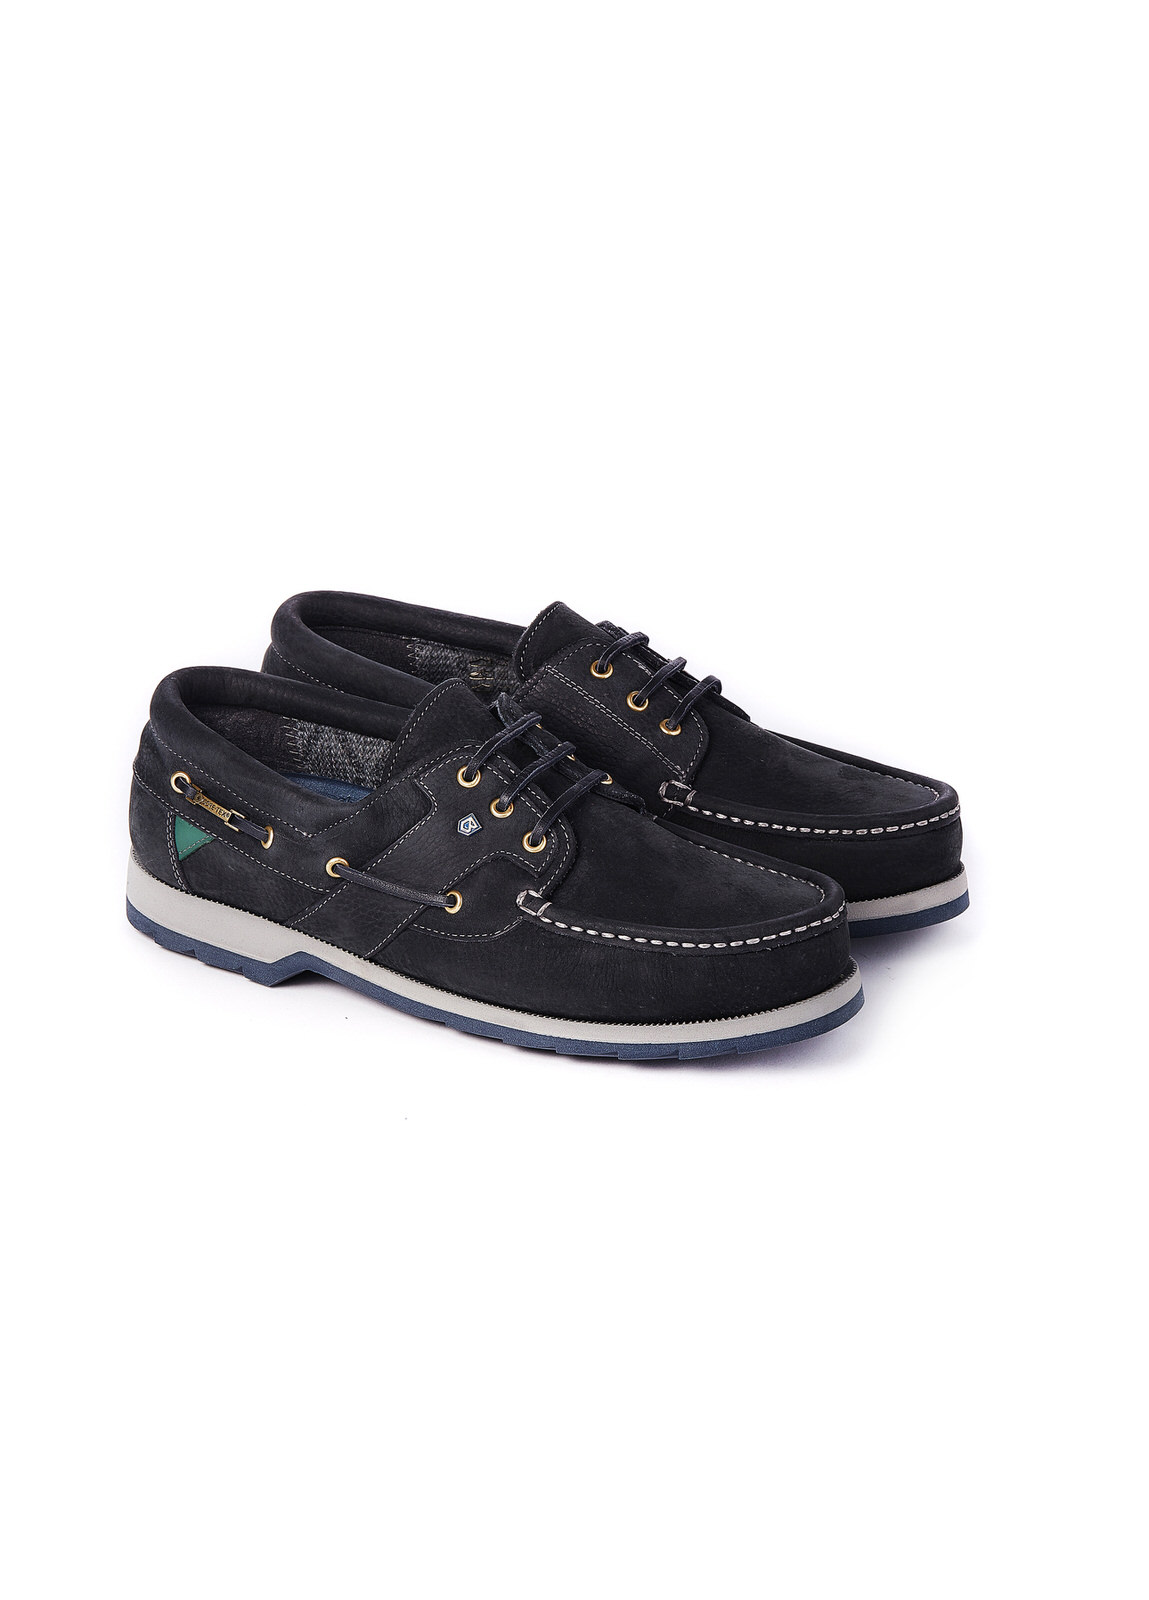 Clipper_Deck_Shoe_Navy_Image_1